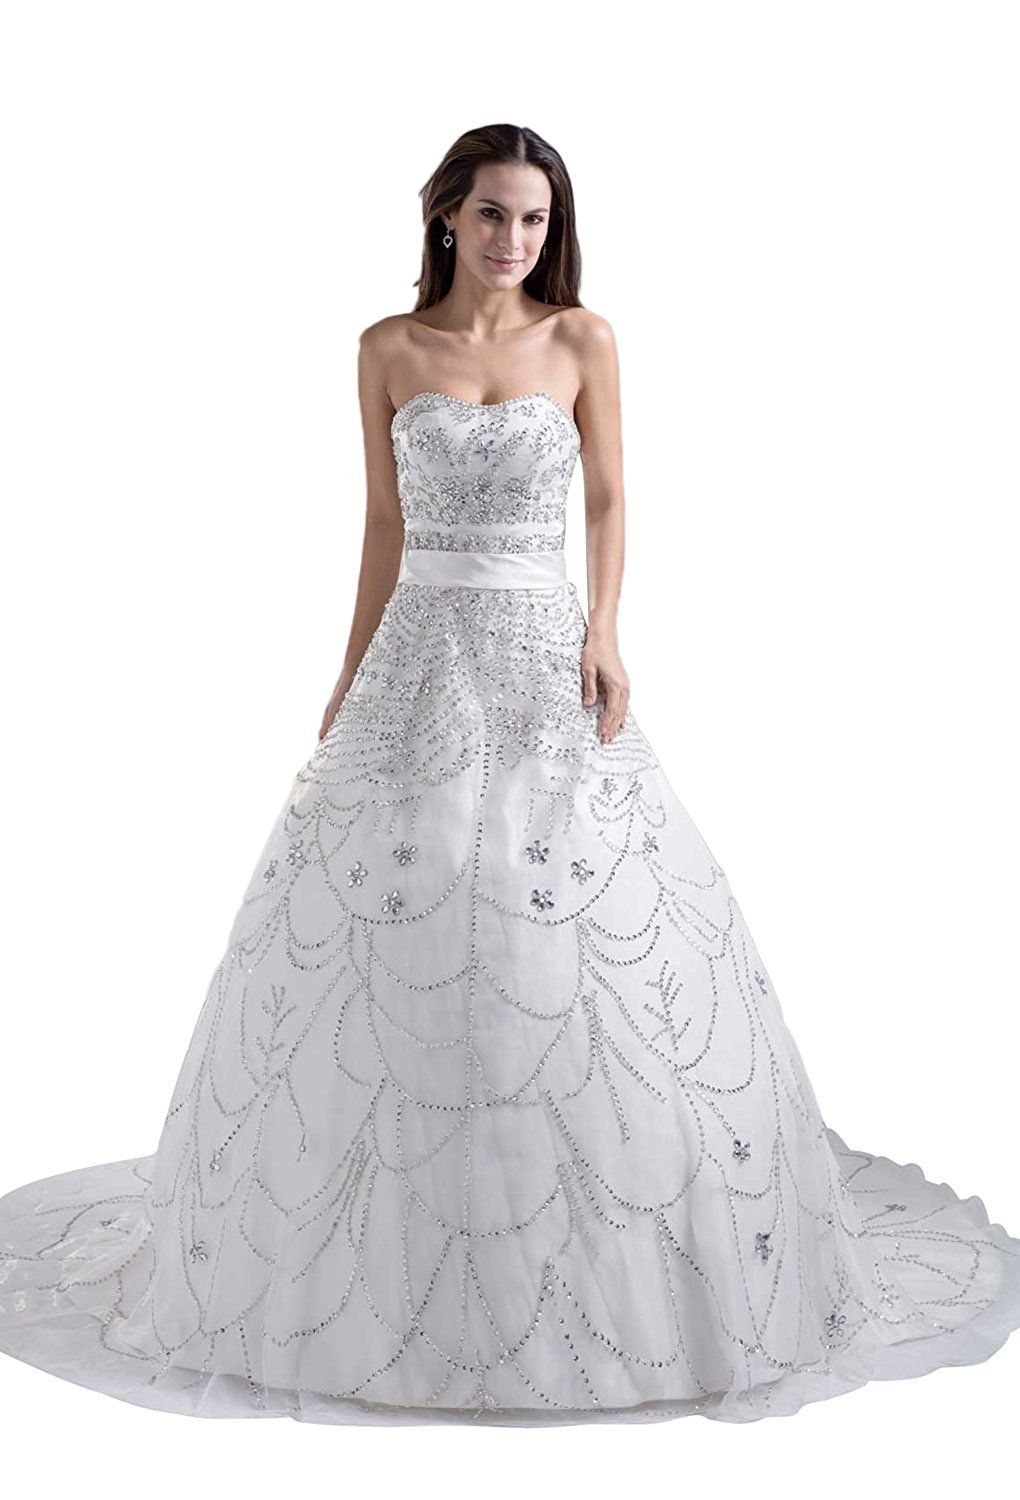 Angel Formal Dresses Women's Strapless Beading Cathedral